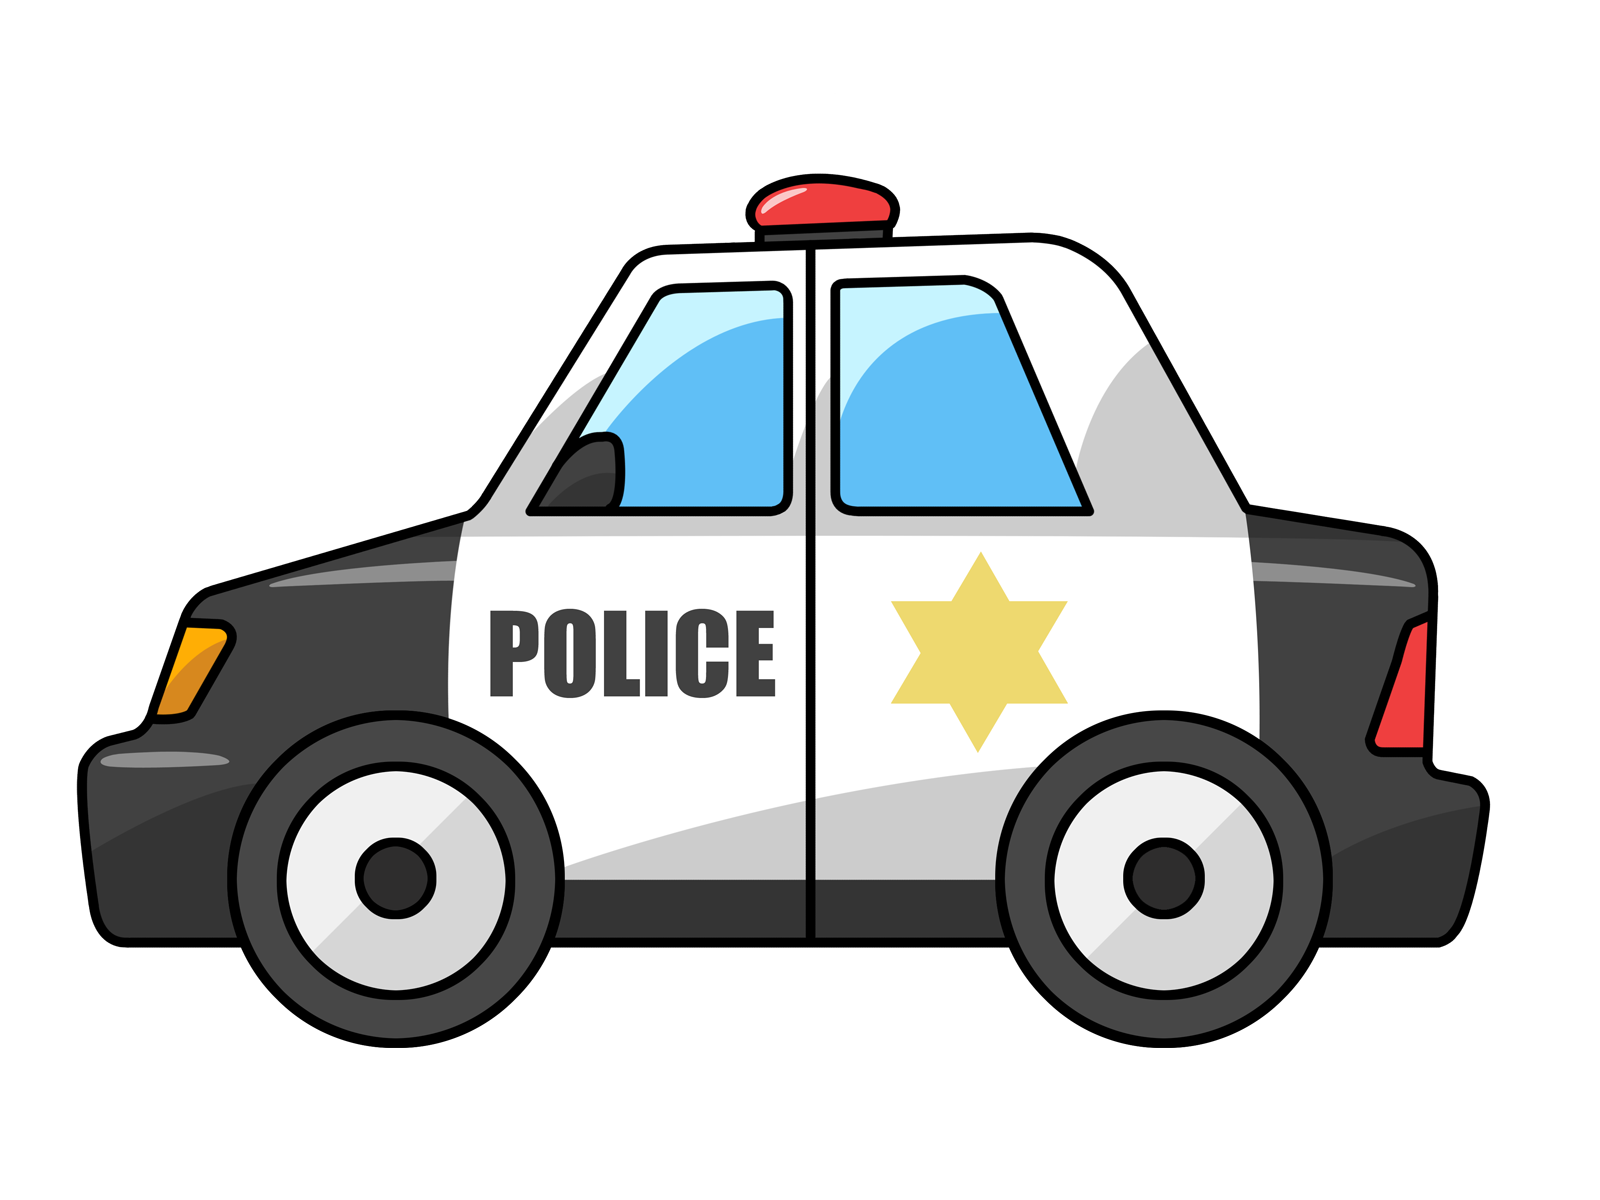 Robber in cop car clipart jpg royalty free library My MultiModal Blog: DEVELOPMENT jpg royalty free library